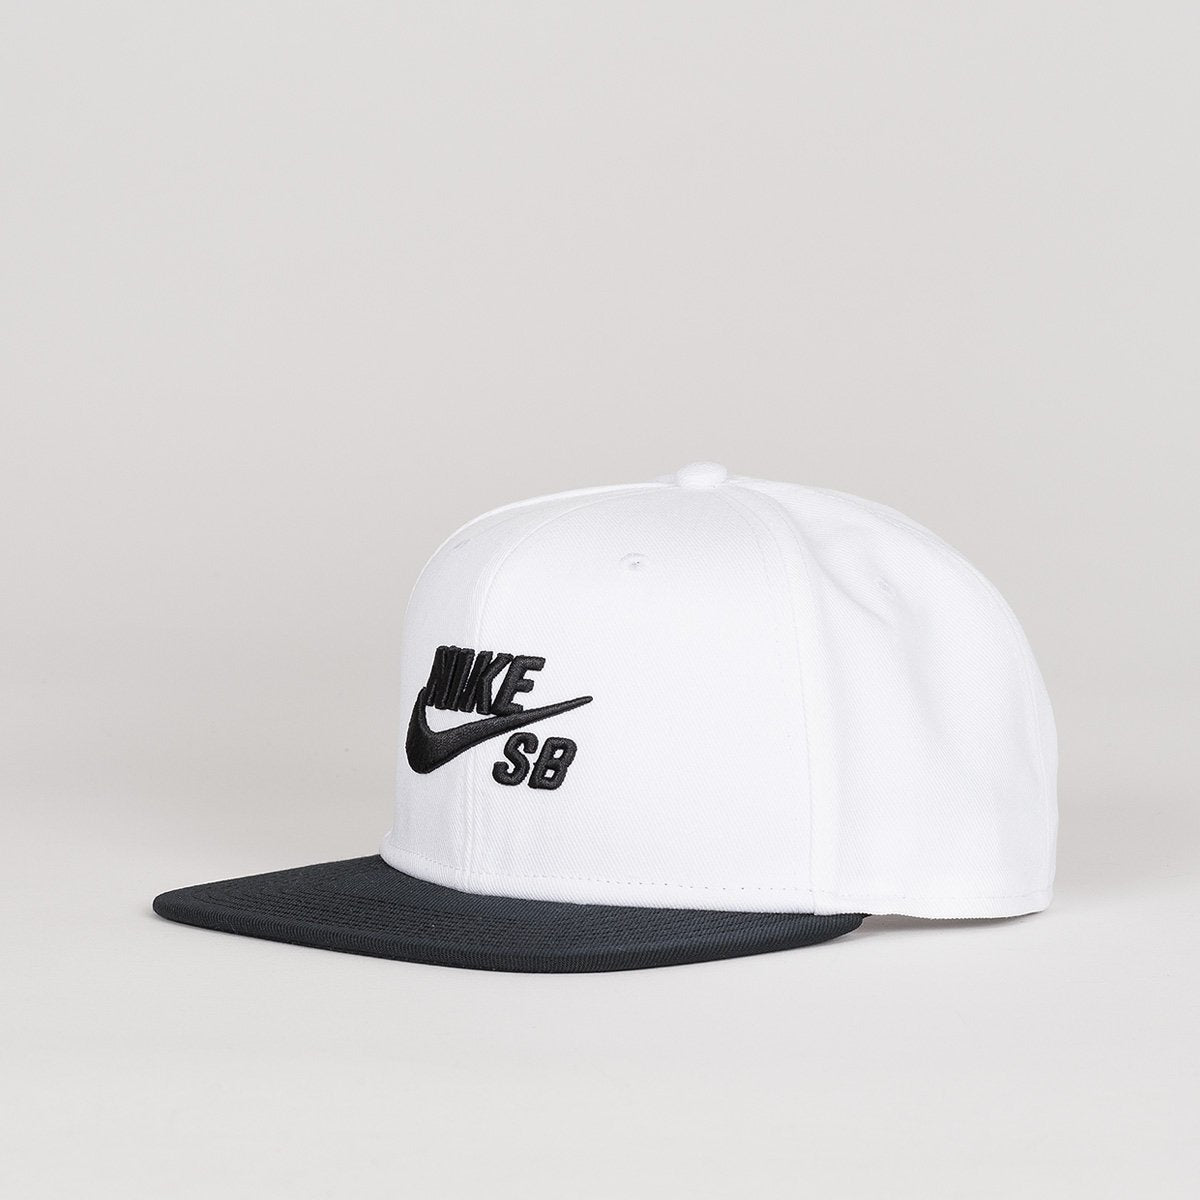 Nike SB Icon Pro Snapback Cap White/Black/Black/Black - Unisex - Accessories